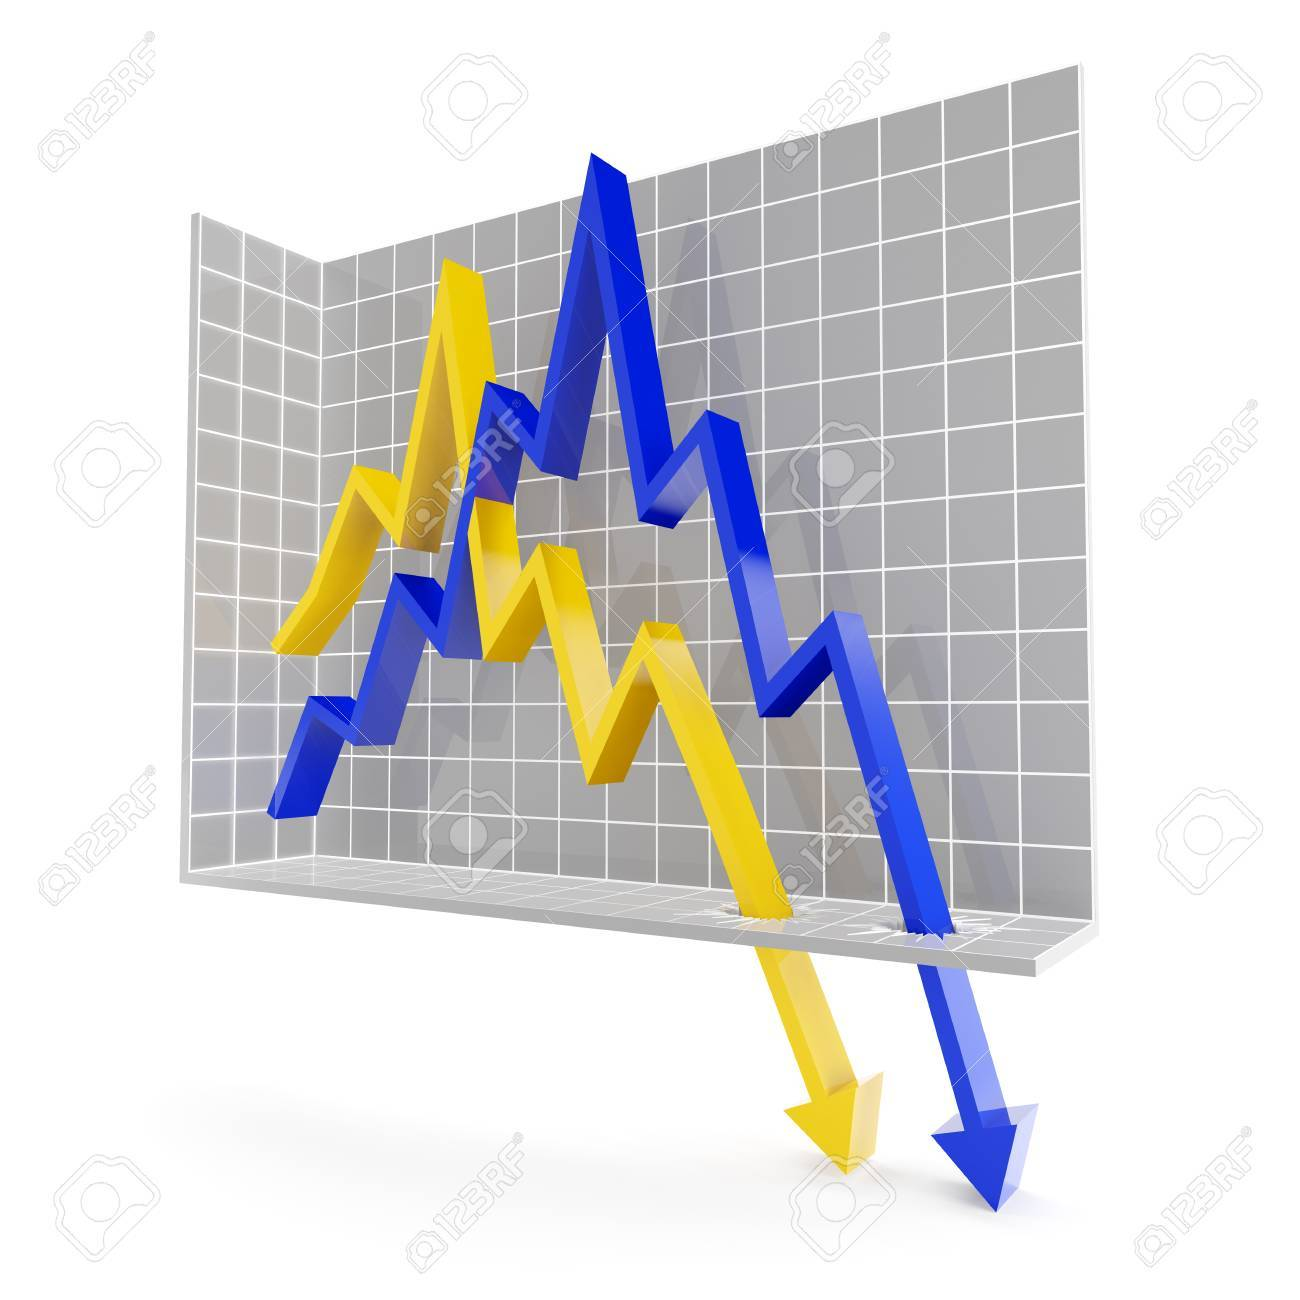 line chart with falling trend, 3d render stock photo, picture and